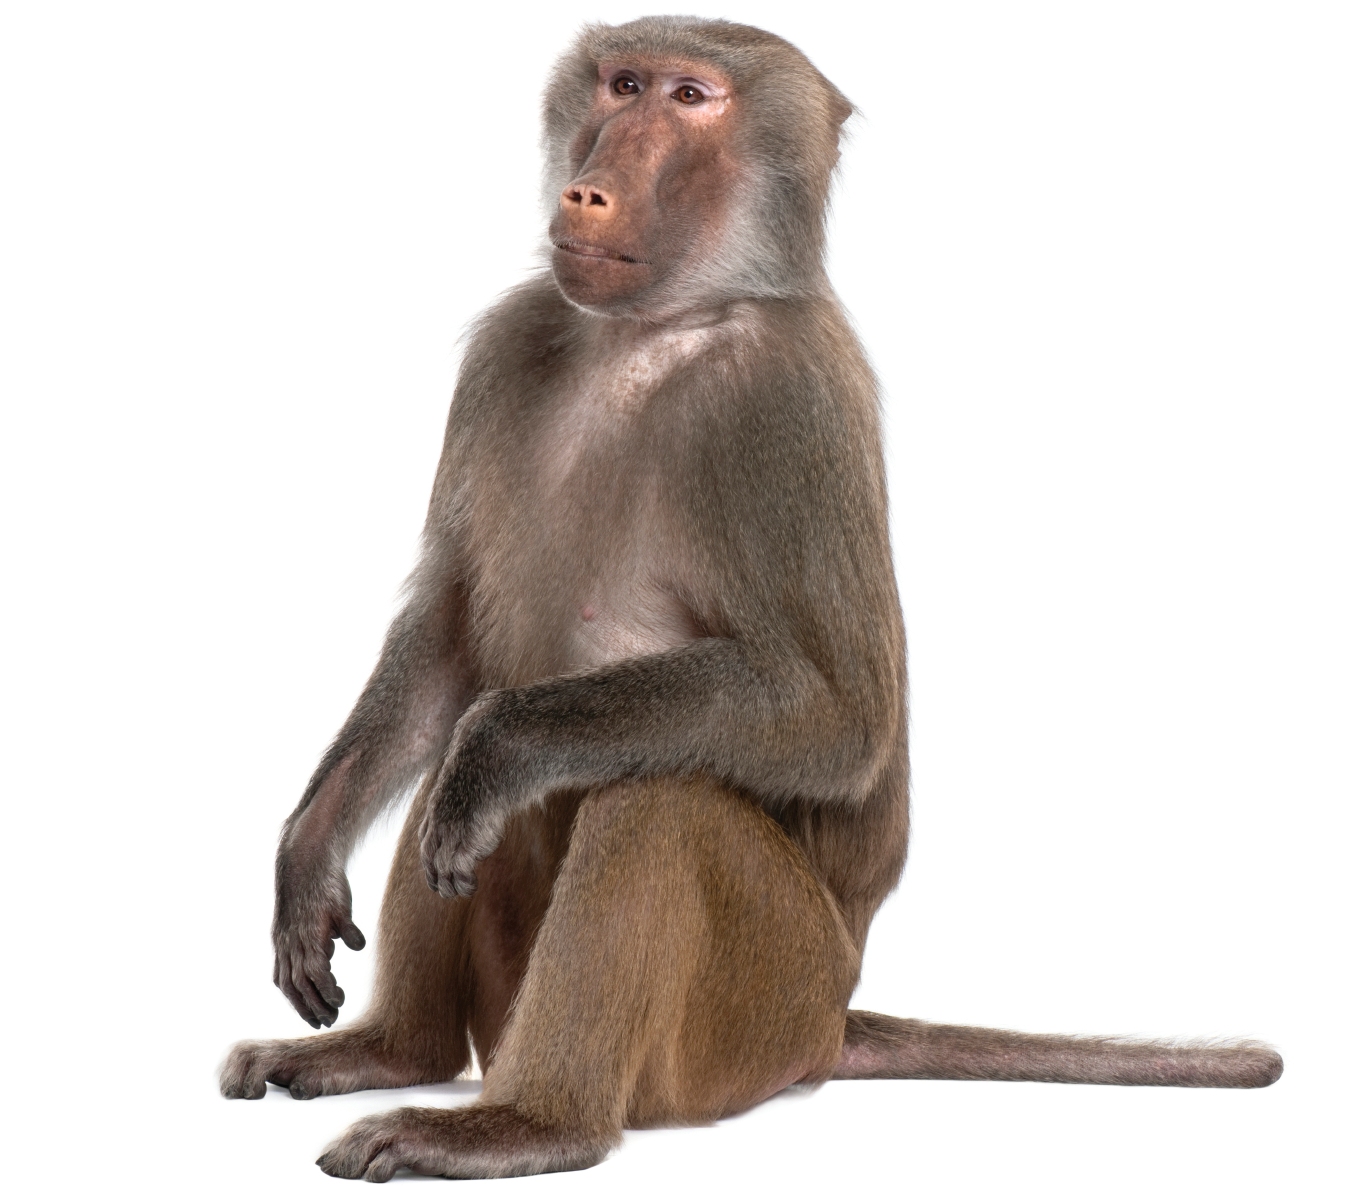 Portable Network Graphics Monkey Baboons Mandrill Primate.